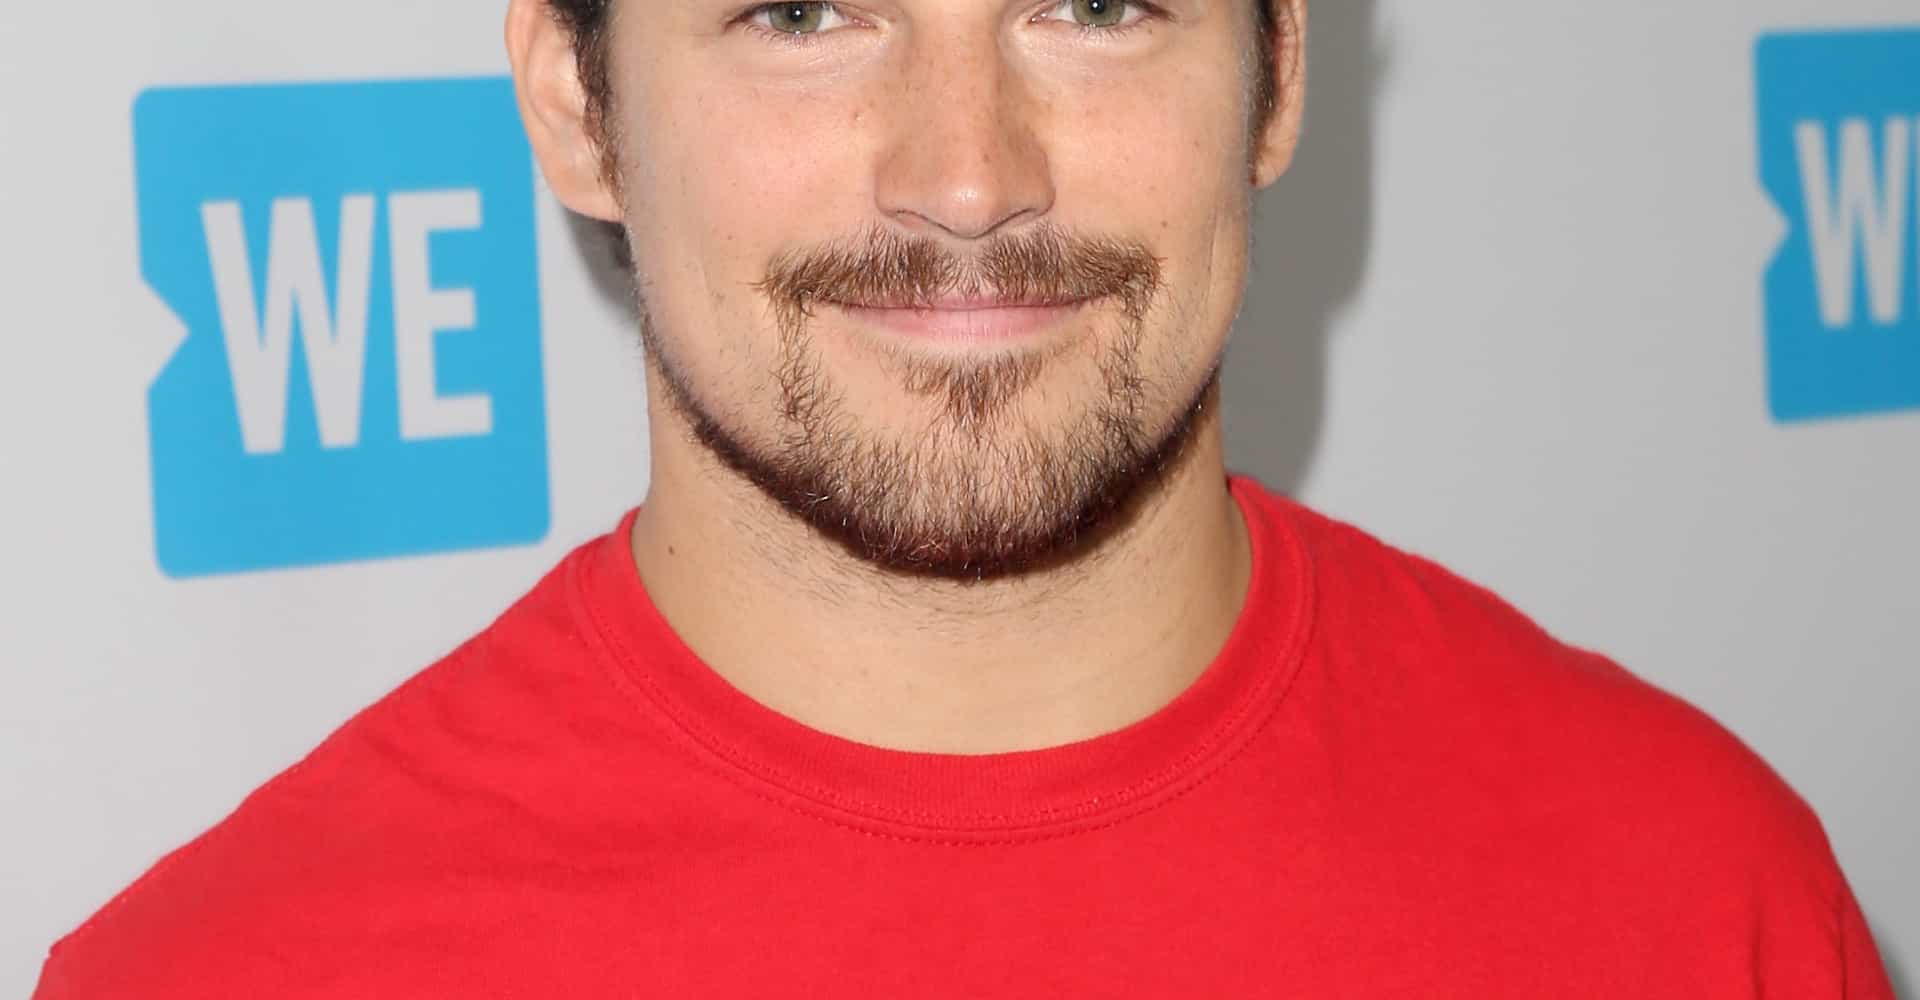 'Grey's Anatomy' actor Giacomo Gianniotti to appear on 'Celebrity Family Feud'